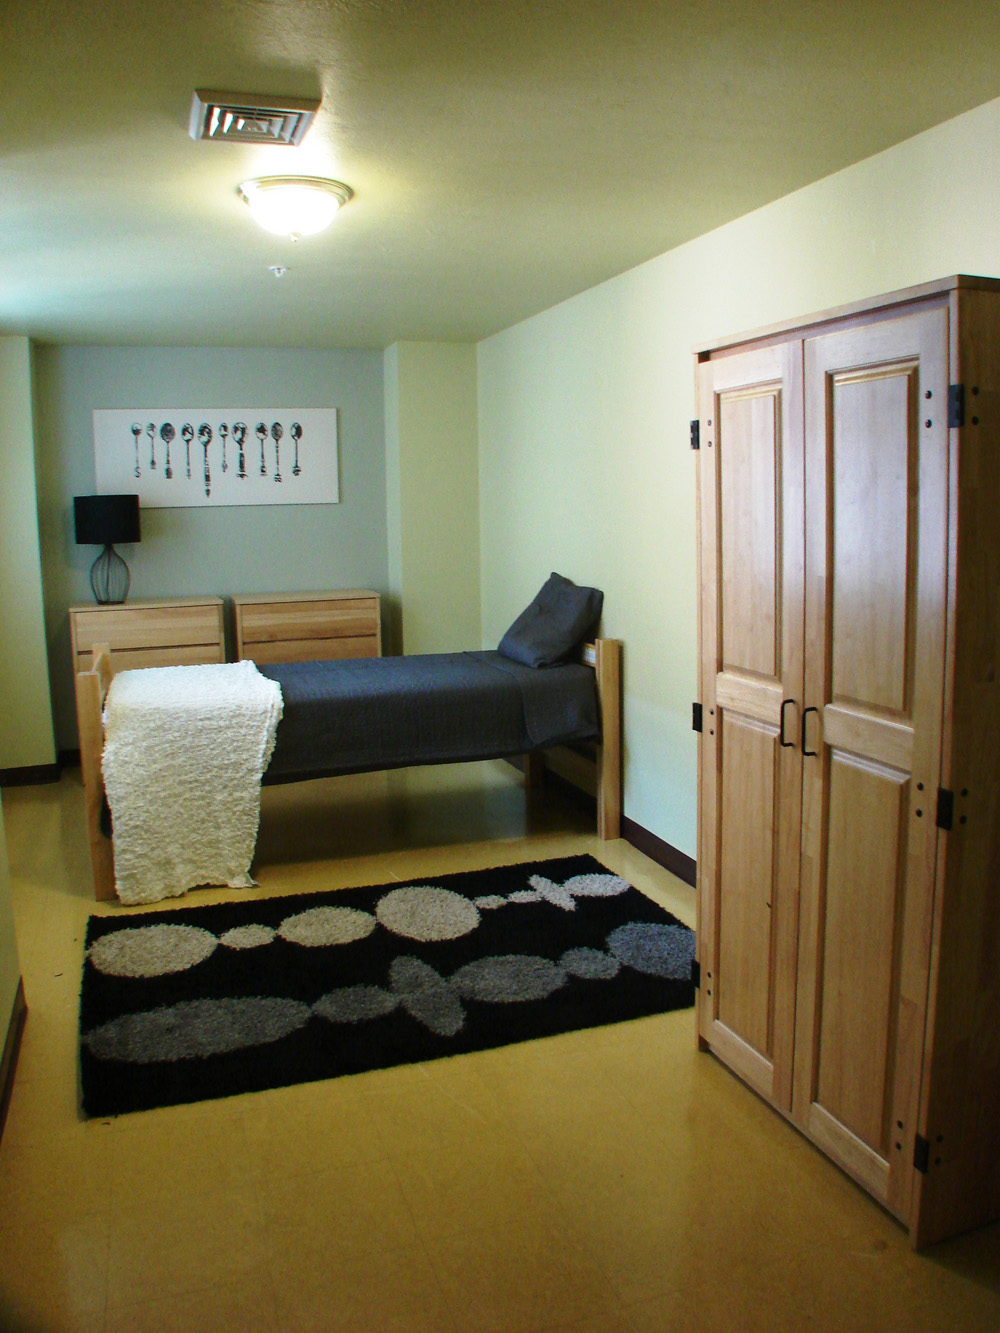 1 Bedroom Apartments Utilities Included Pittsburgh Pa Reviews Prices For Morgan At Northshore